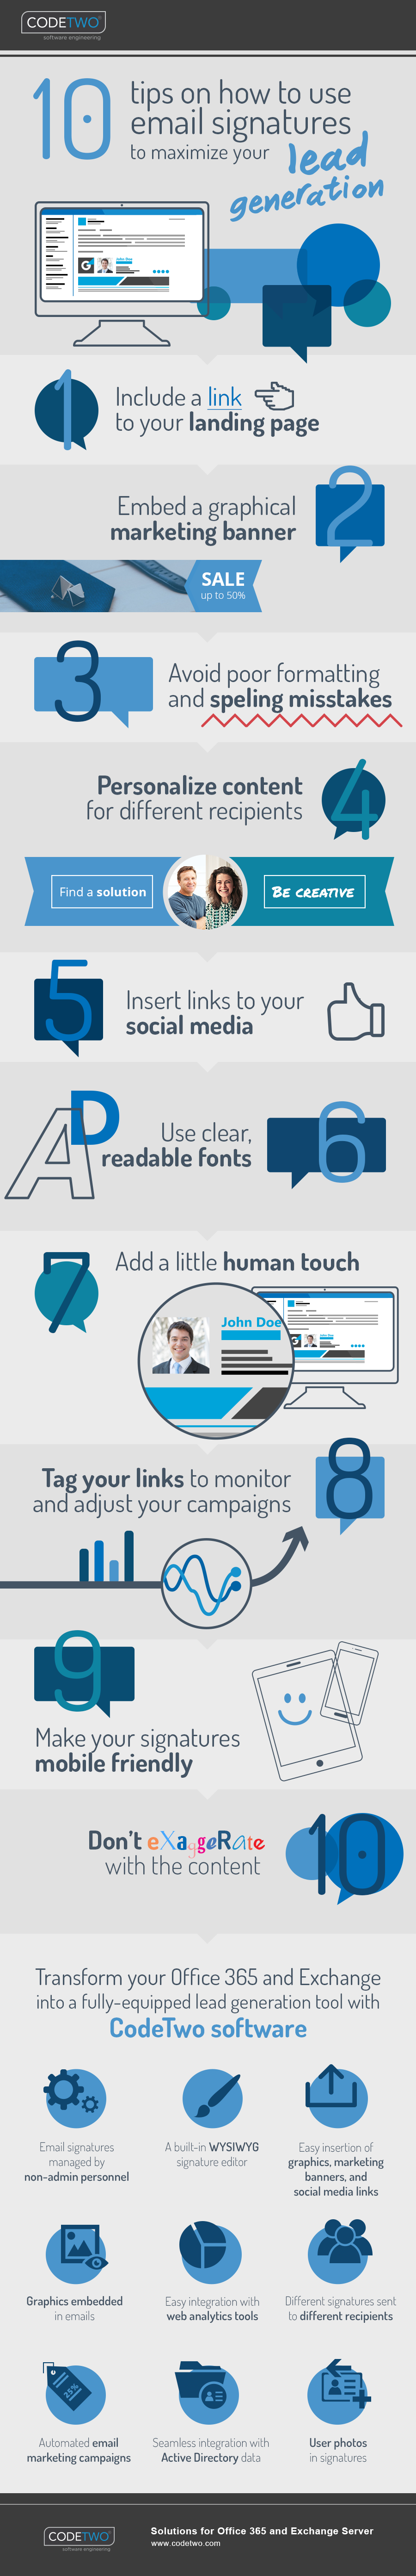 10 tips on how to use email signatures to maximize your lead generation | Infographic